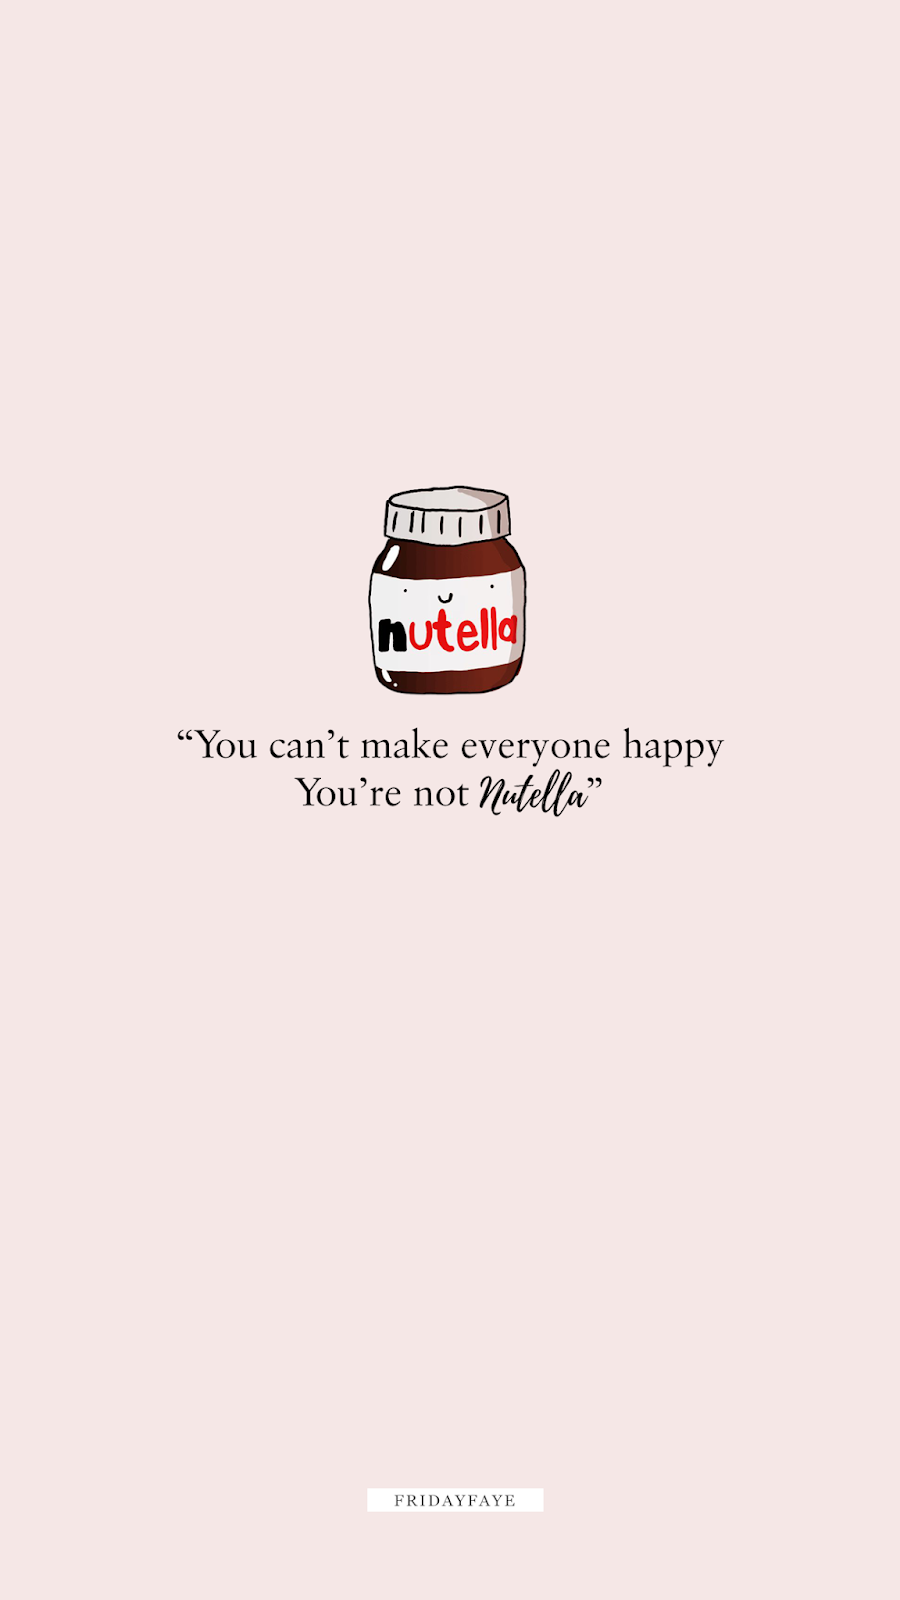 Free Girly Iphone Wallpapers July Edition Sassy Wallpaper Nutella Pretty Wallpaper Iphone